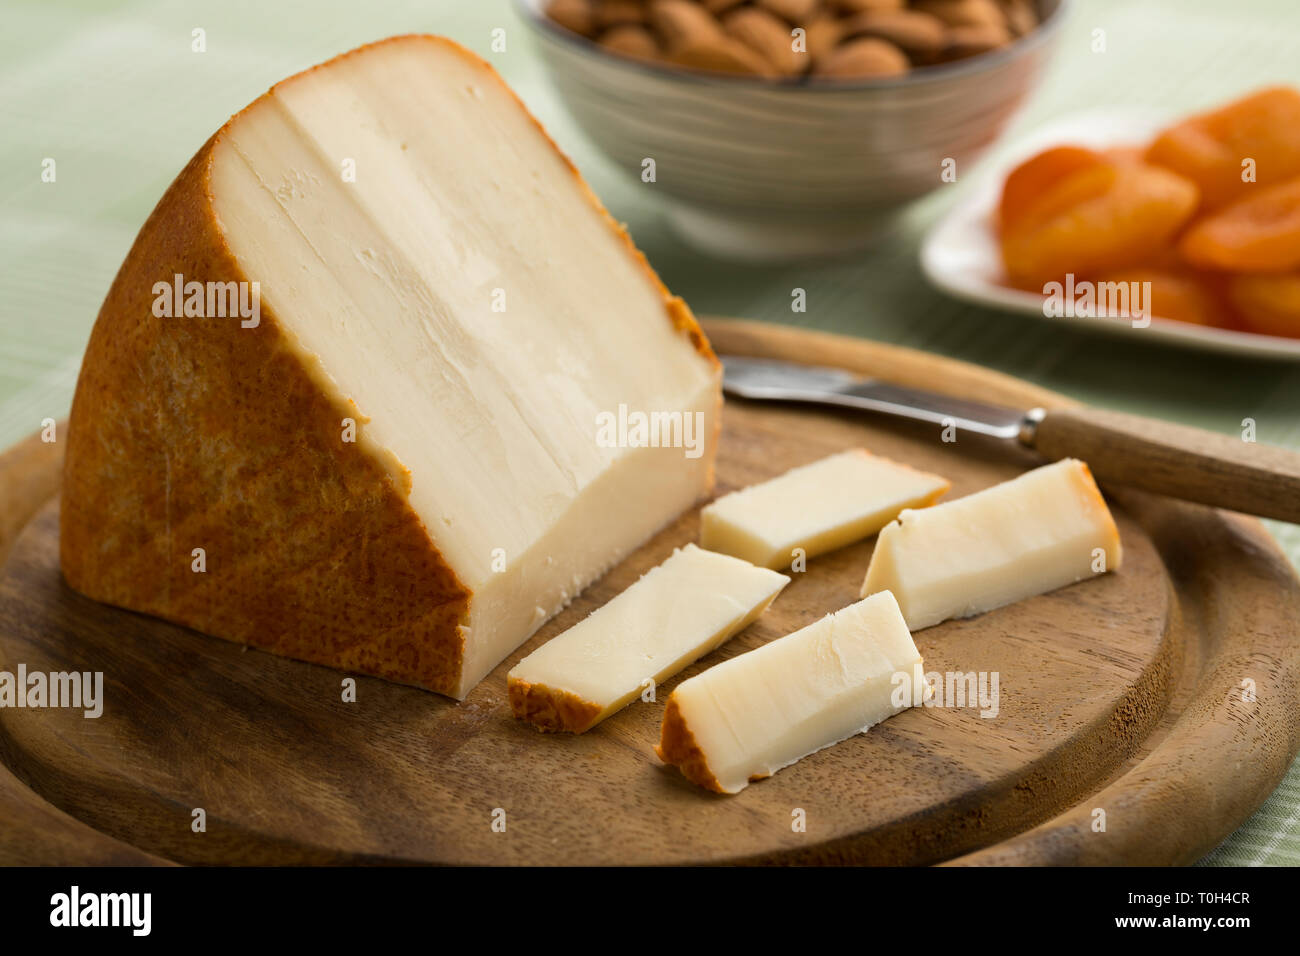 Piece of French sheep cheese and slices on a cutting board - Stock Image